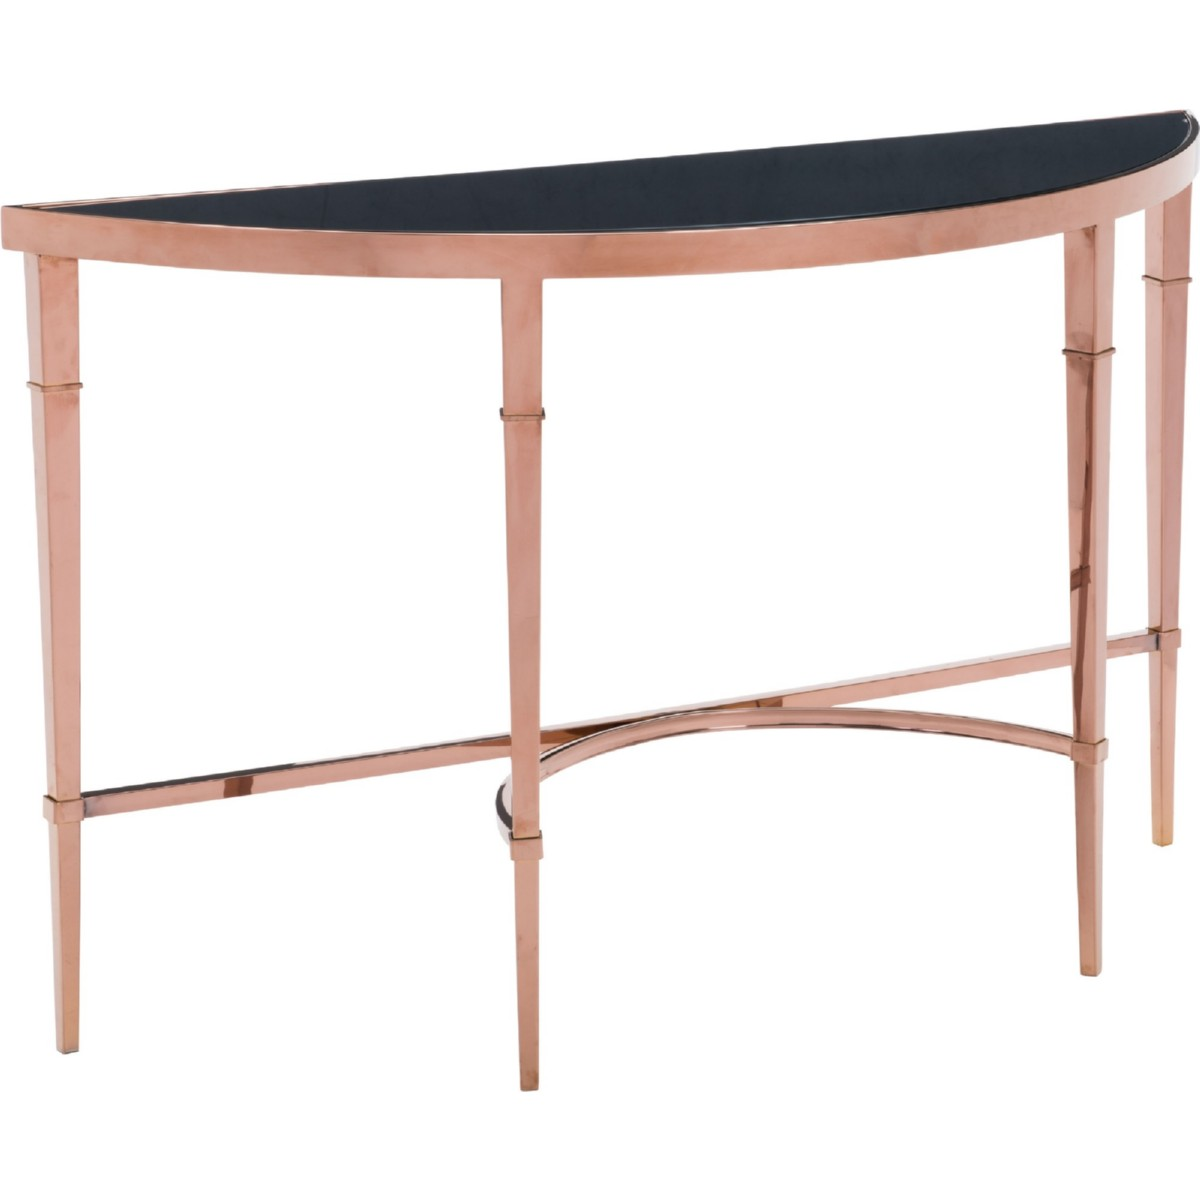 Zuo Modern Furniture 100348 Elite Console Table In Polished Rose Gold W Demilune Black Gl Top